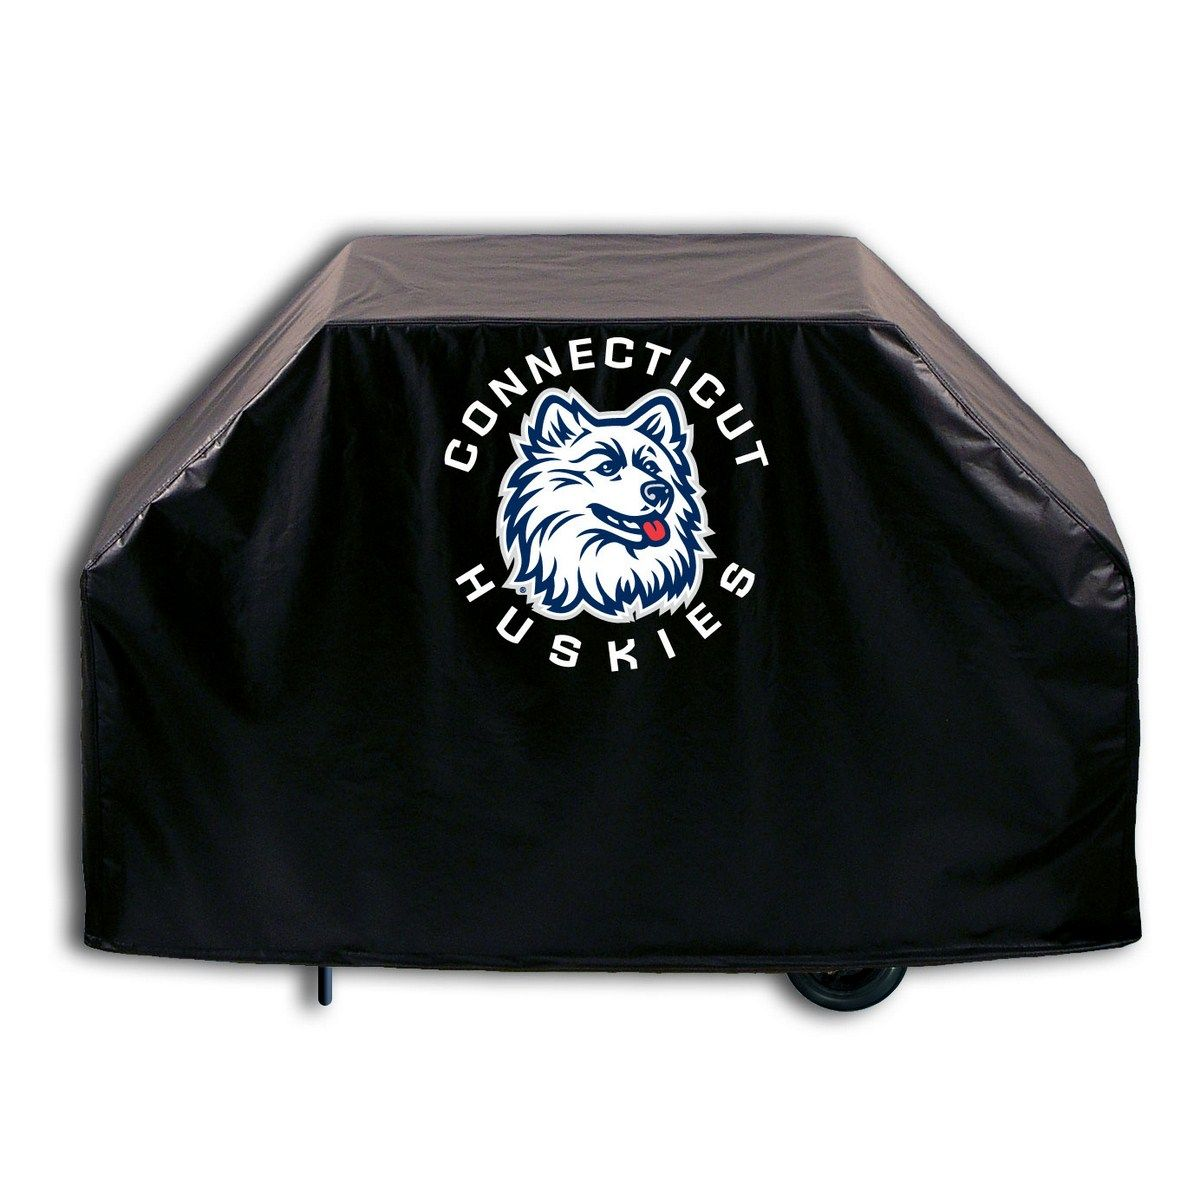 Connecticut Huskies 60 Grill cover, Holland bar stool